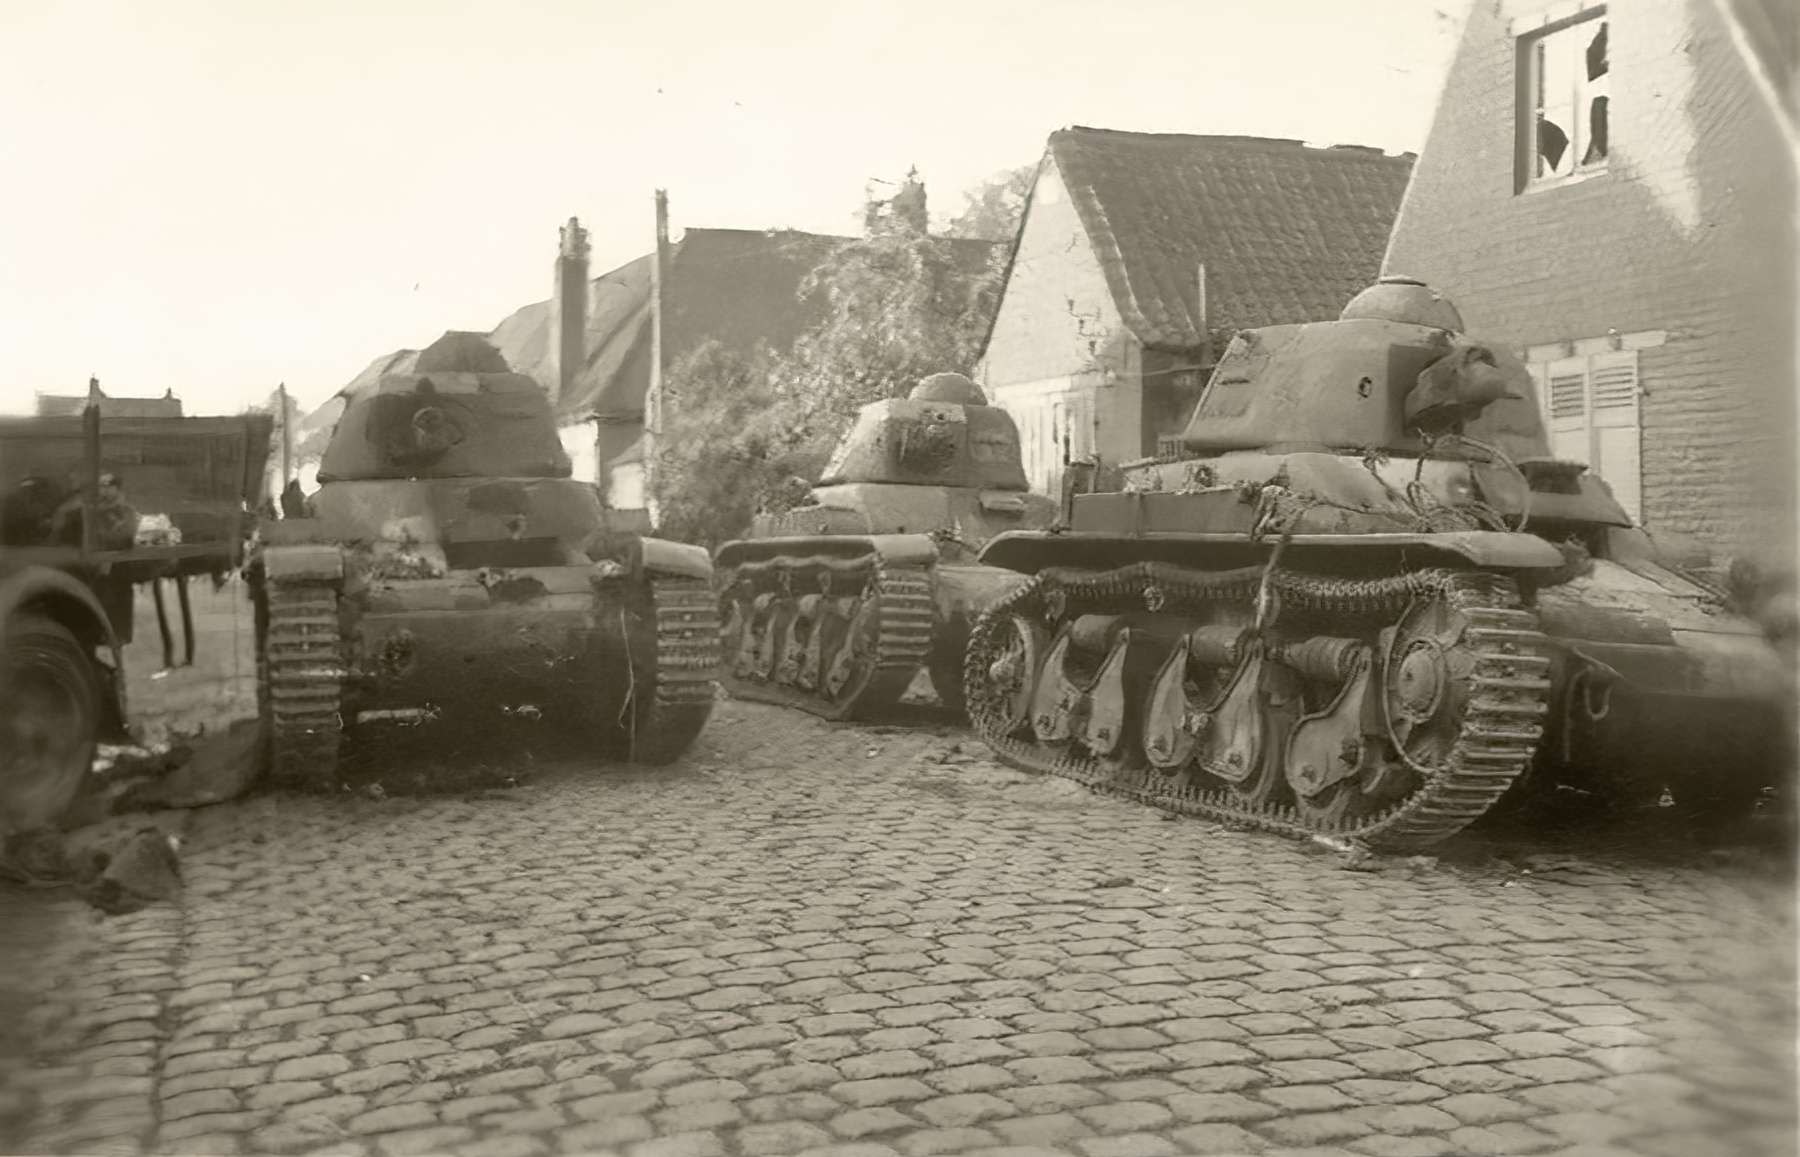 French Army Renault R35 support tank abandoned battle of France 1940 ebay 02